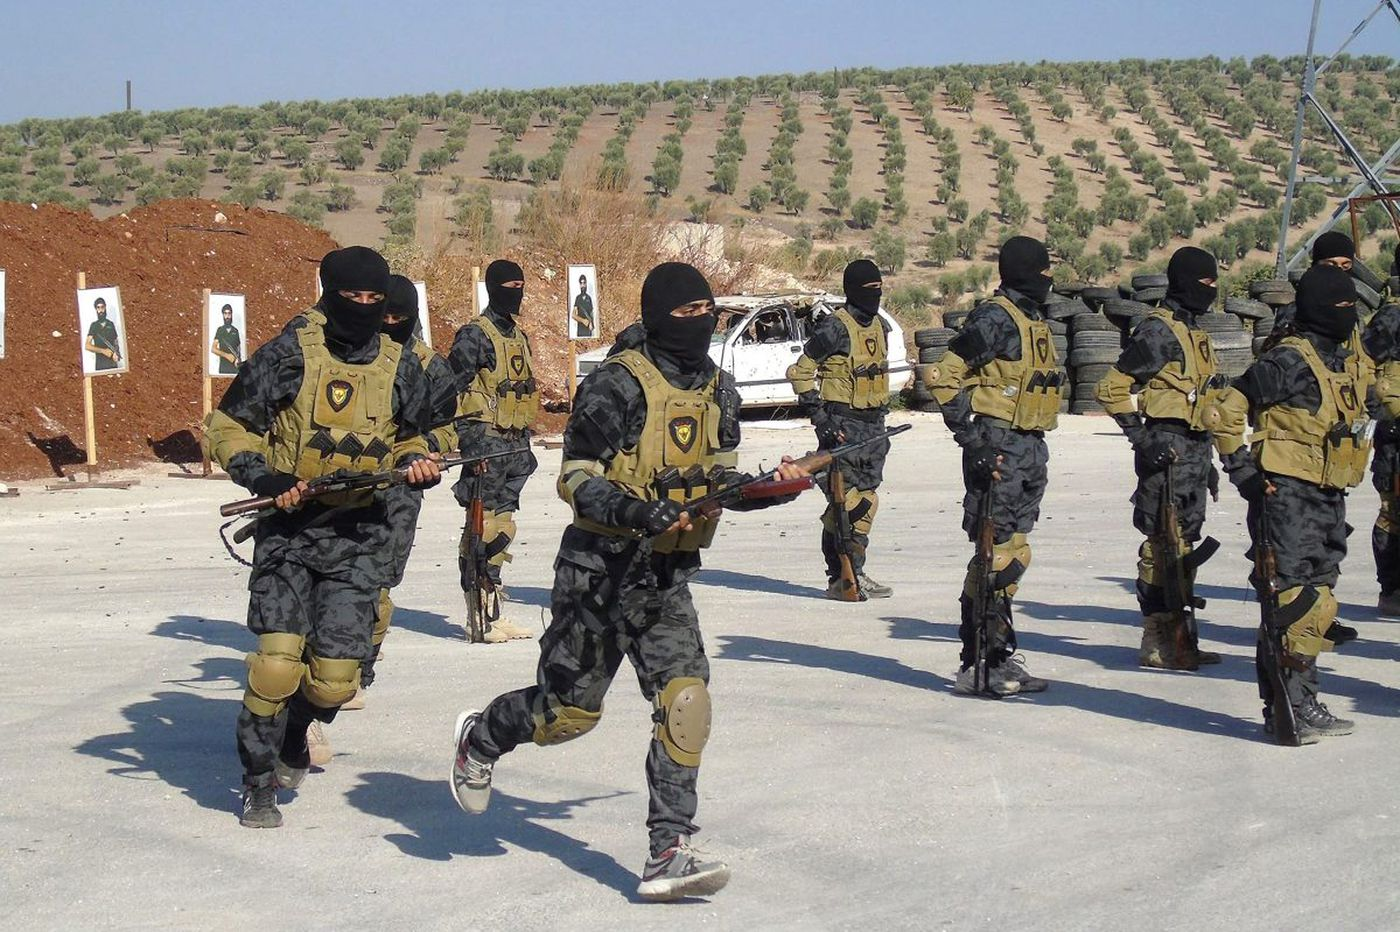 New Mideast realities require support for Kurds